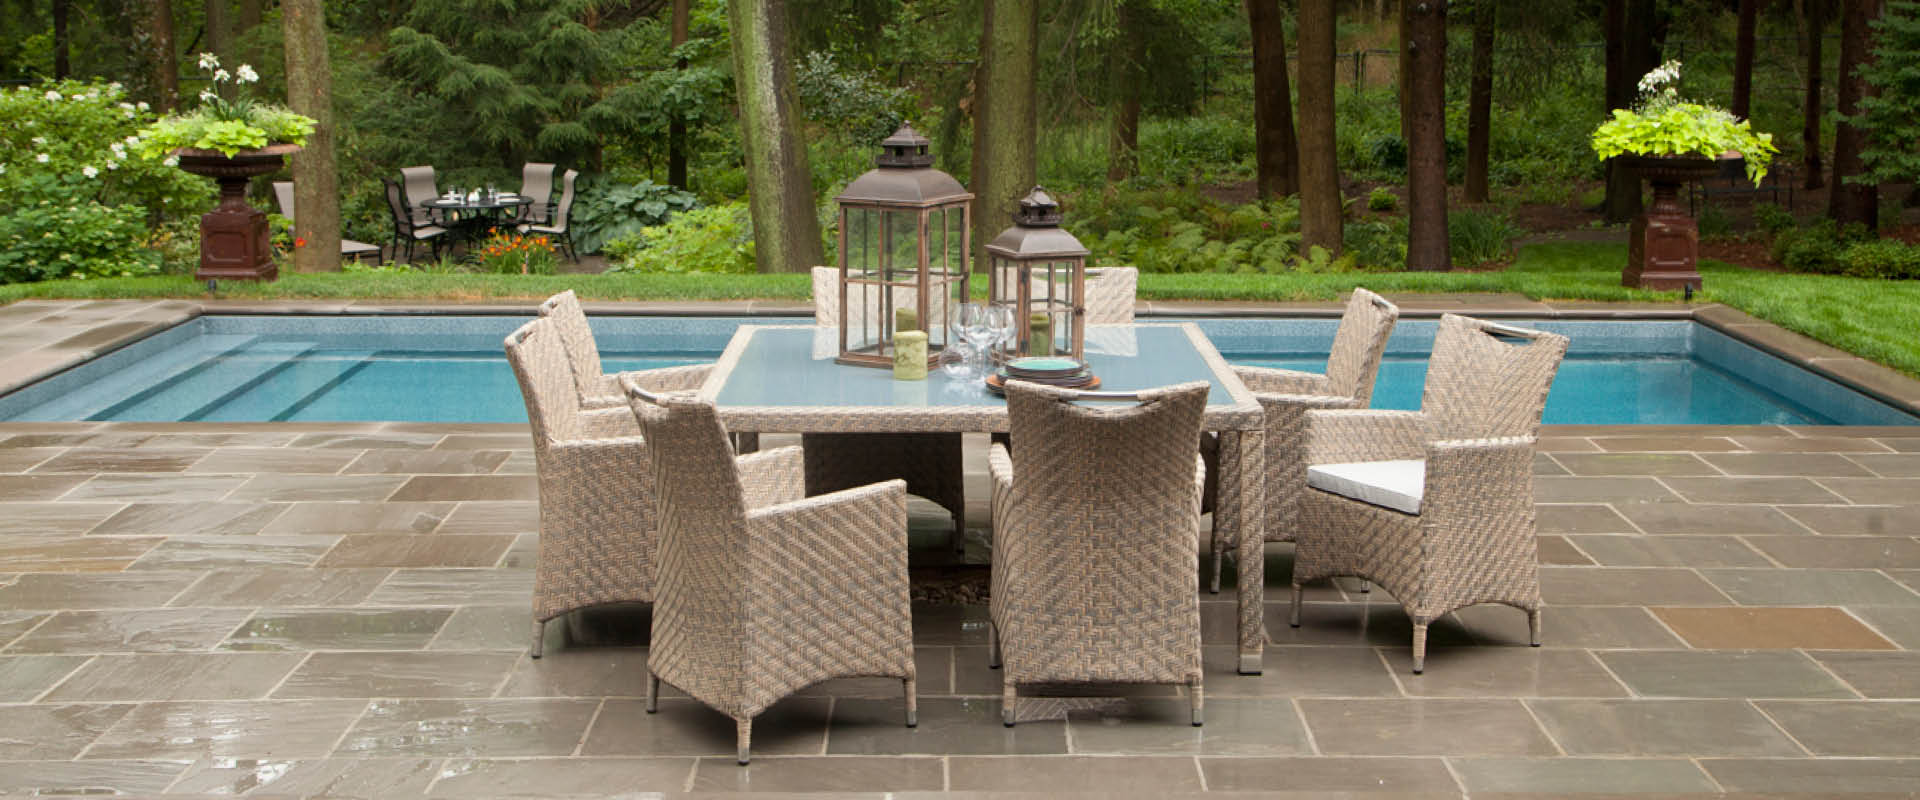 Cheap Patio Furniture Hamilton Ontario